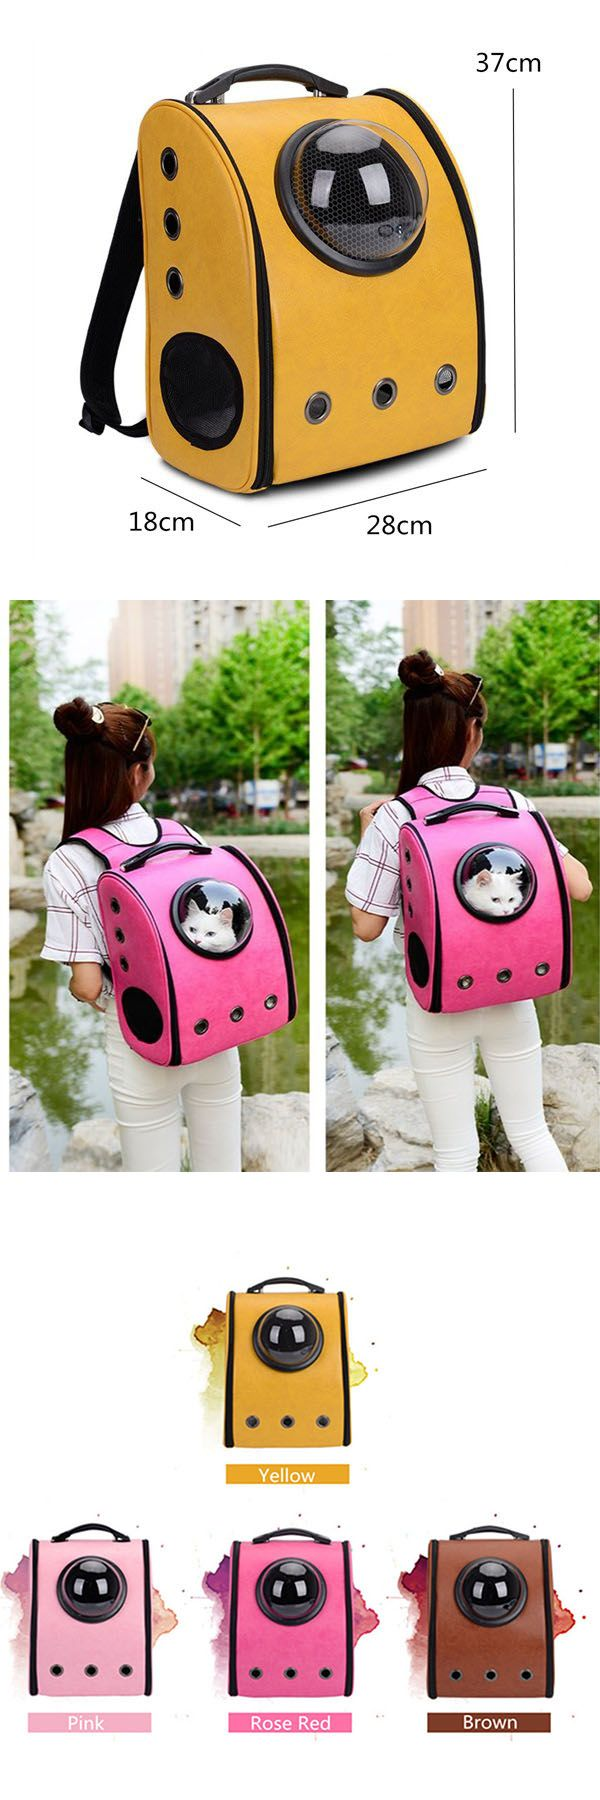 Yep. Its gunna happen Dog Puppy Carrier Travel Backpack Front Net Shoulder Bag~~ Guys, click the pic or the visit button to check out our purchasing page if you'd like to have one:)#pet#stuff#bag#carrier#swag